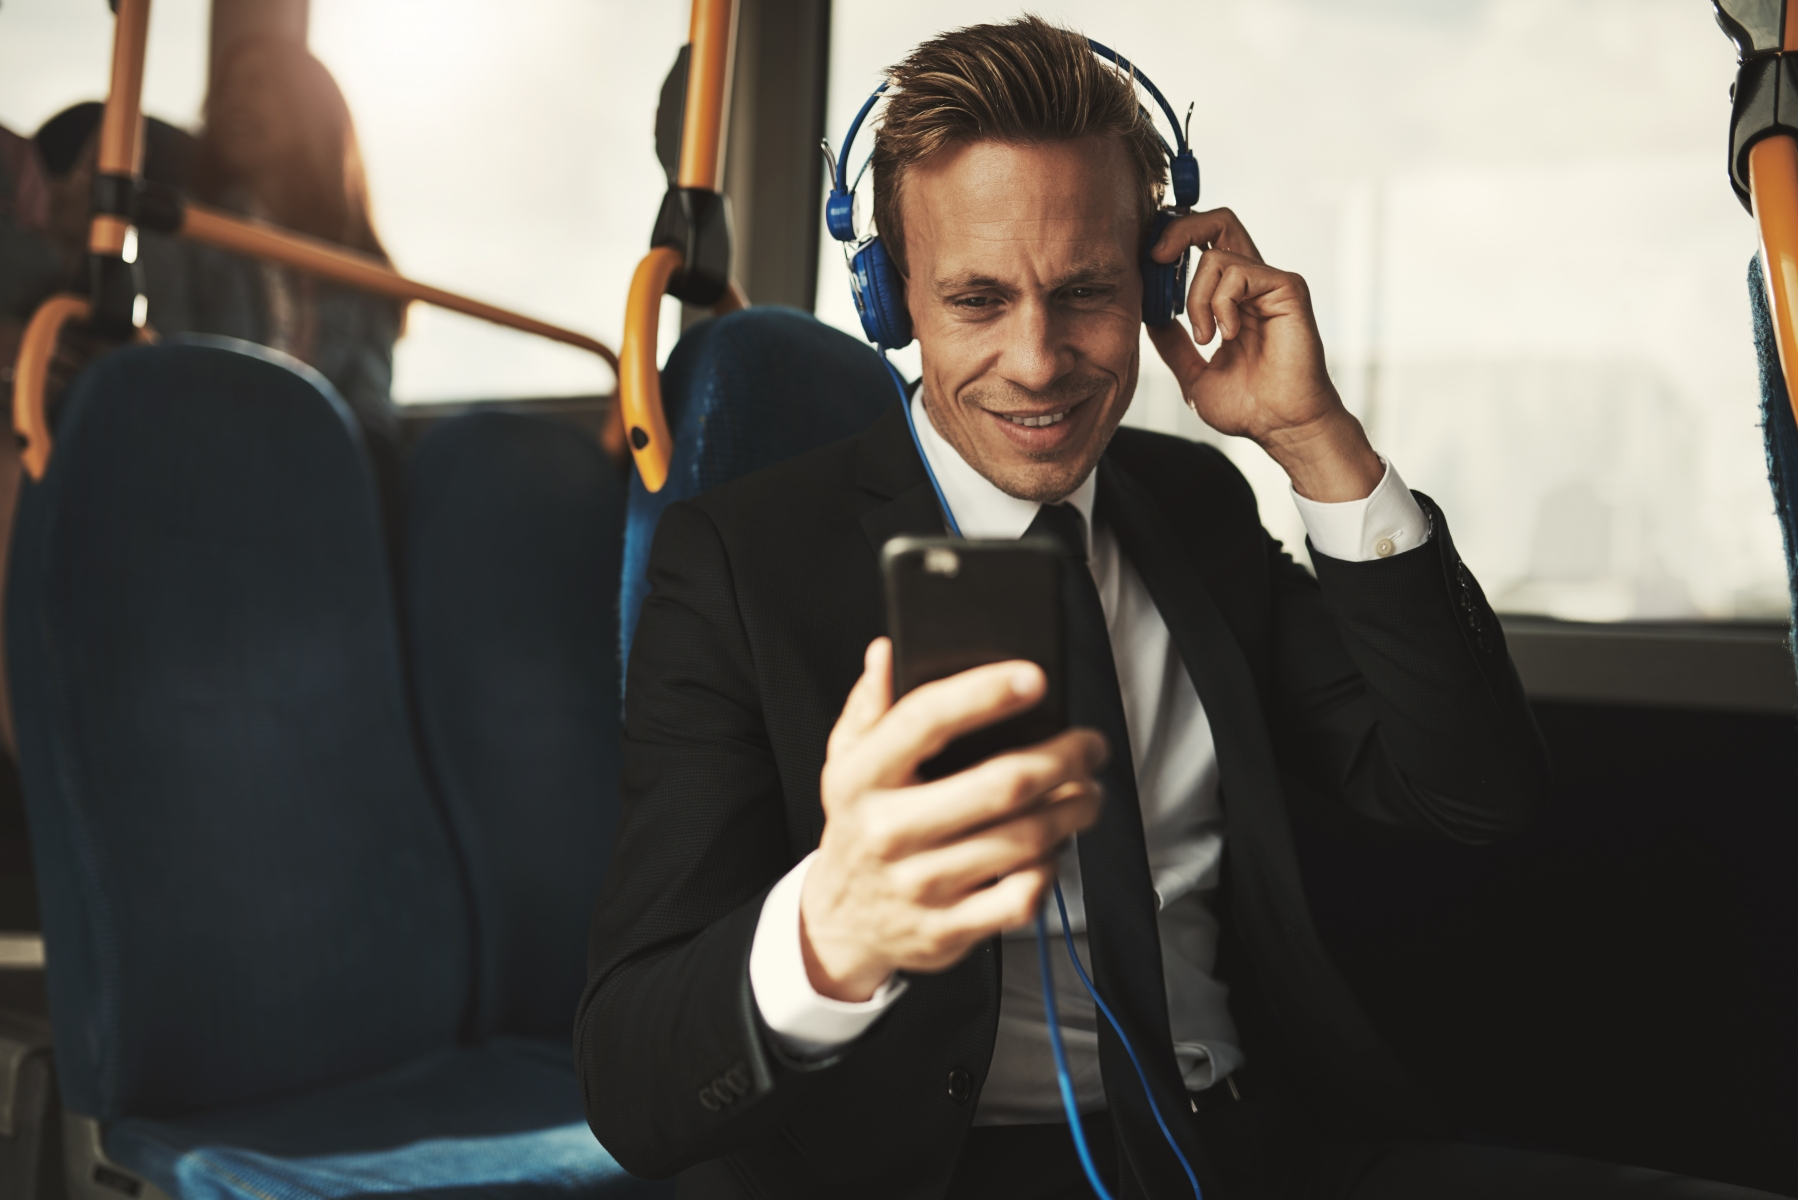 Smiling businessman reading messages and wearing headphones on a bus